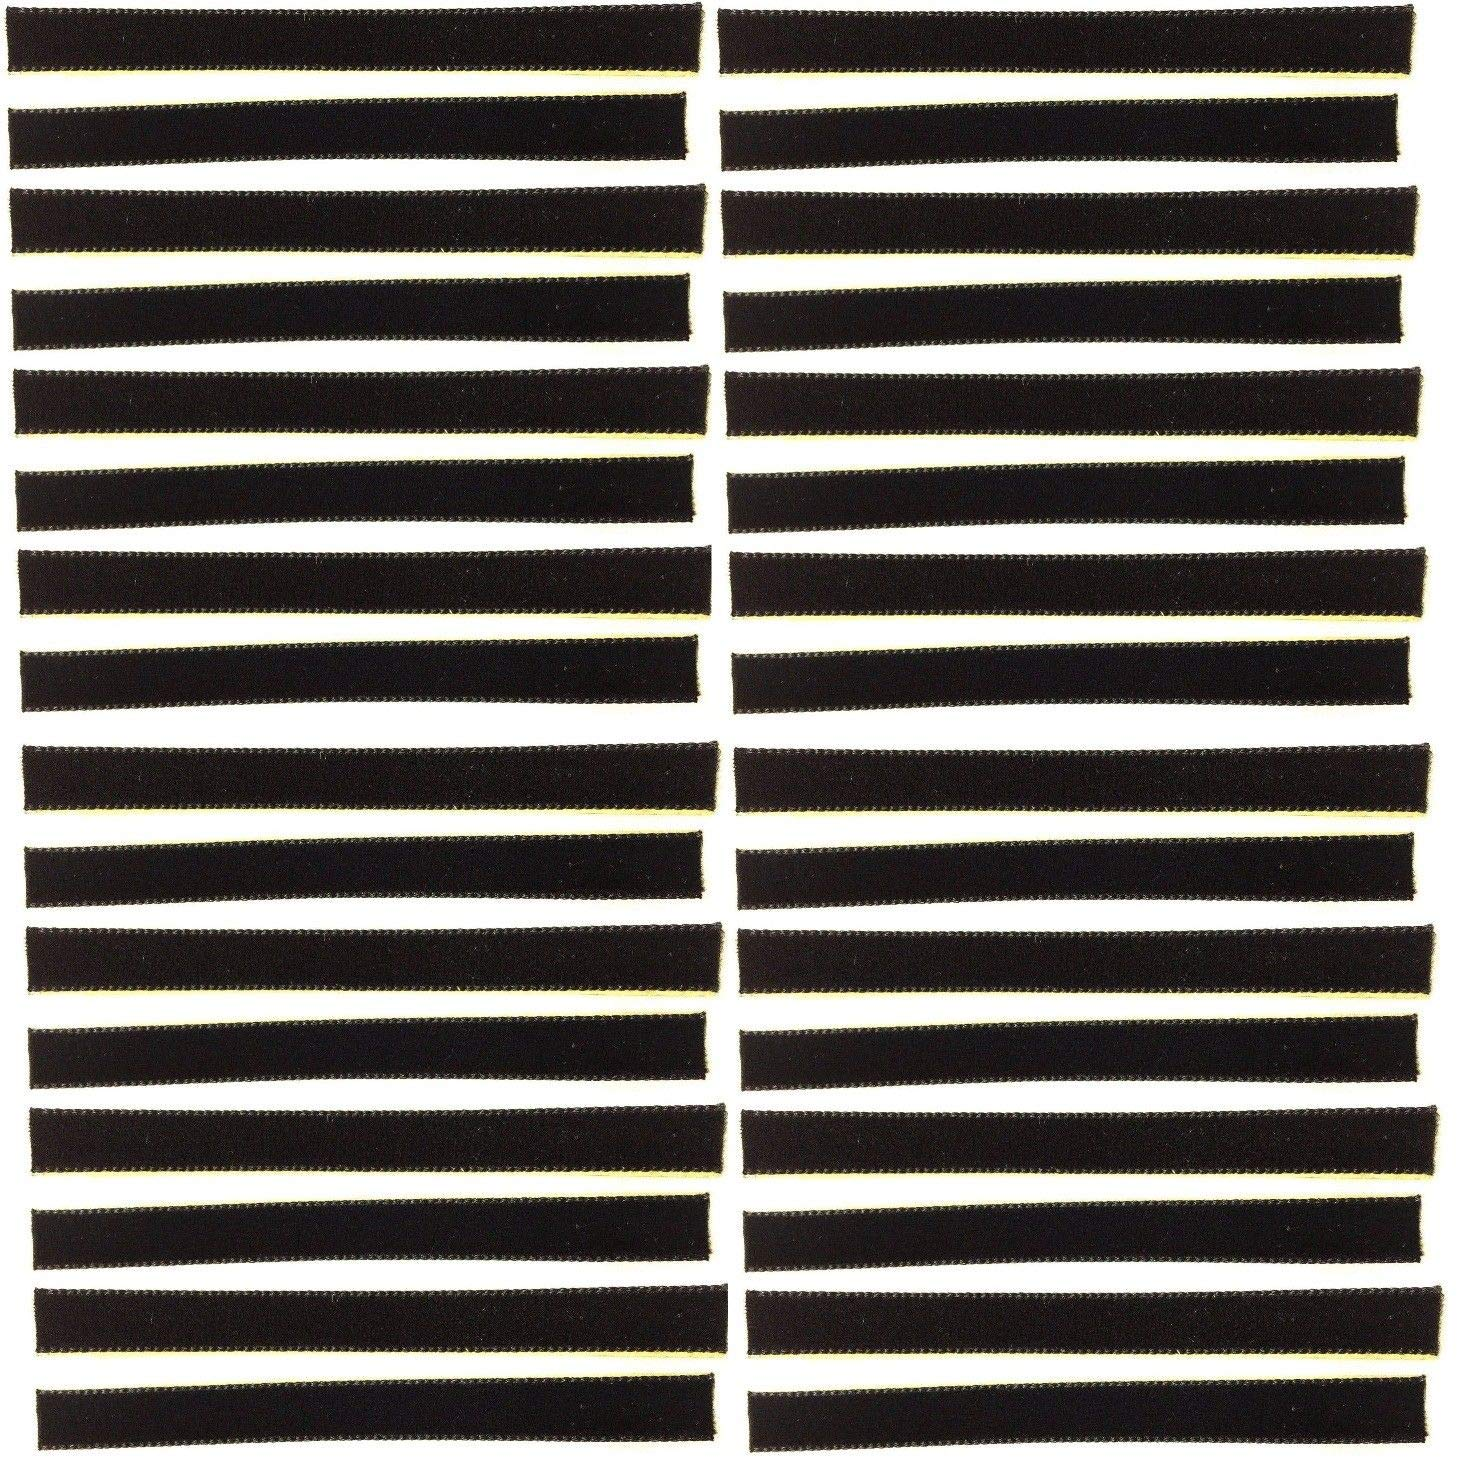 32-Pack of Black Over-Sized VPI Machine/Nitty Gritty/Okki Nokki Replacement LP Vinyl Record Album Cleaning/Cleaner Strips Oversized 3/8'' x 4'' Velvet/Felt/3M Adhesive by Capitol Collectibles